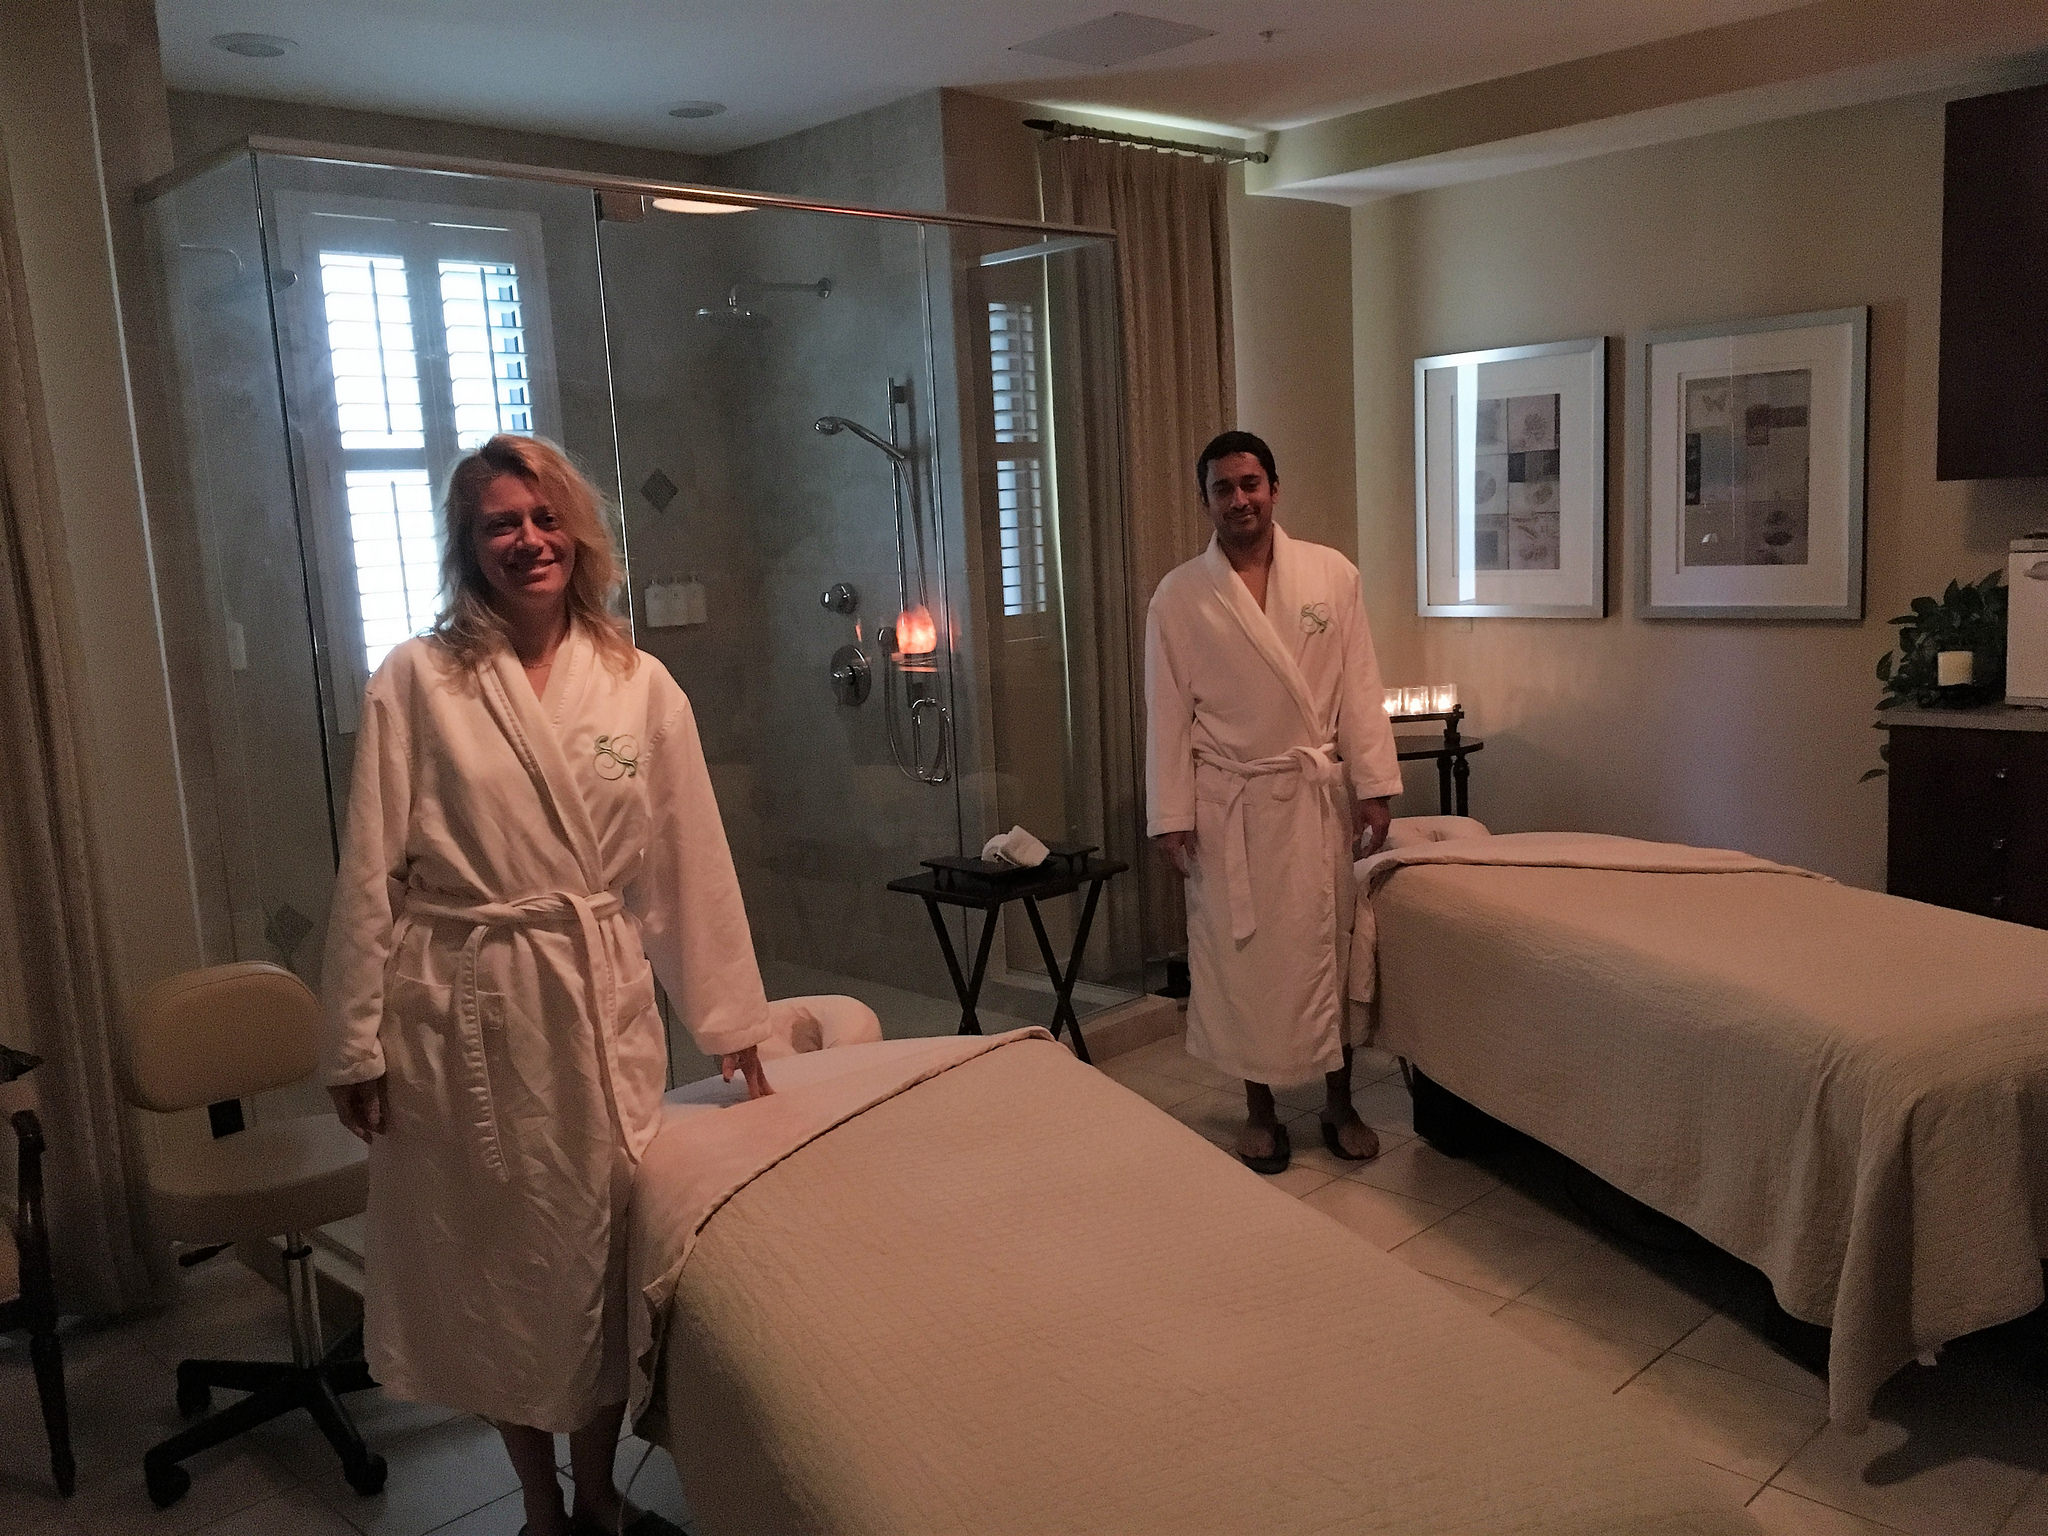 Salamander SPA and Wellness Center at Innisbrook Golf Resort in Tampa